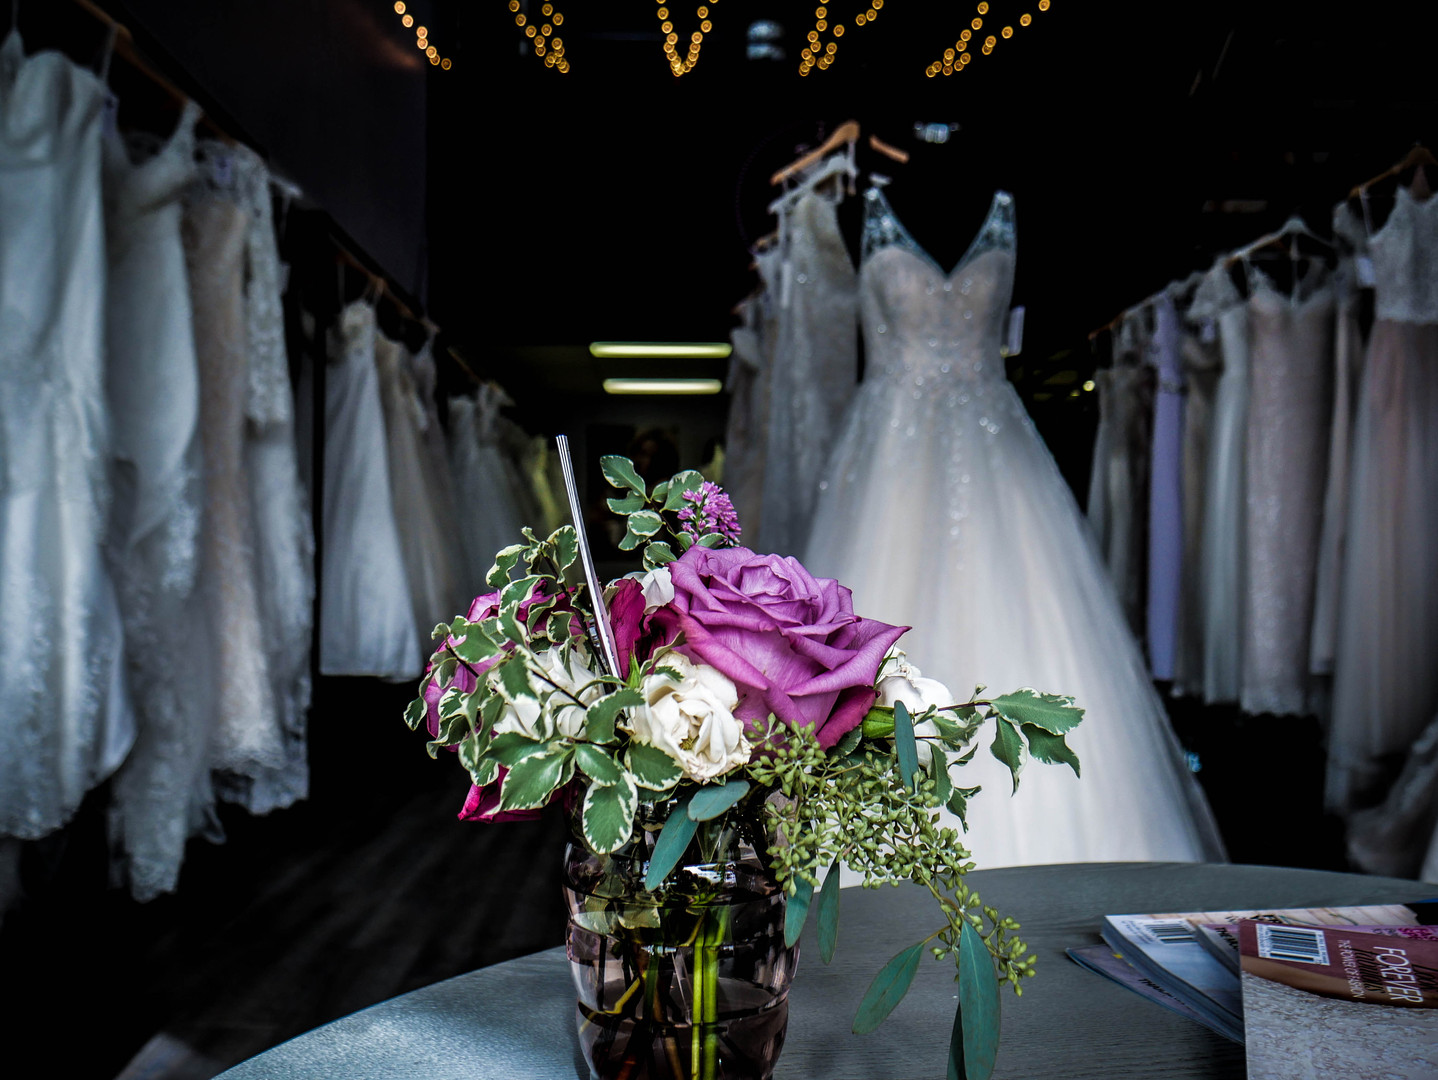 Beautiful view of a wonderful floral bouquet. Sit on the comfortable couches and look at the beautiful gowns while getting to know your personal consultant.